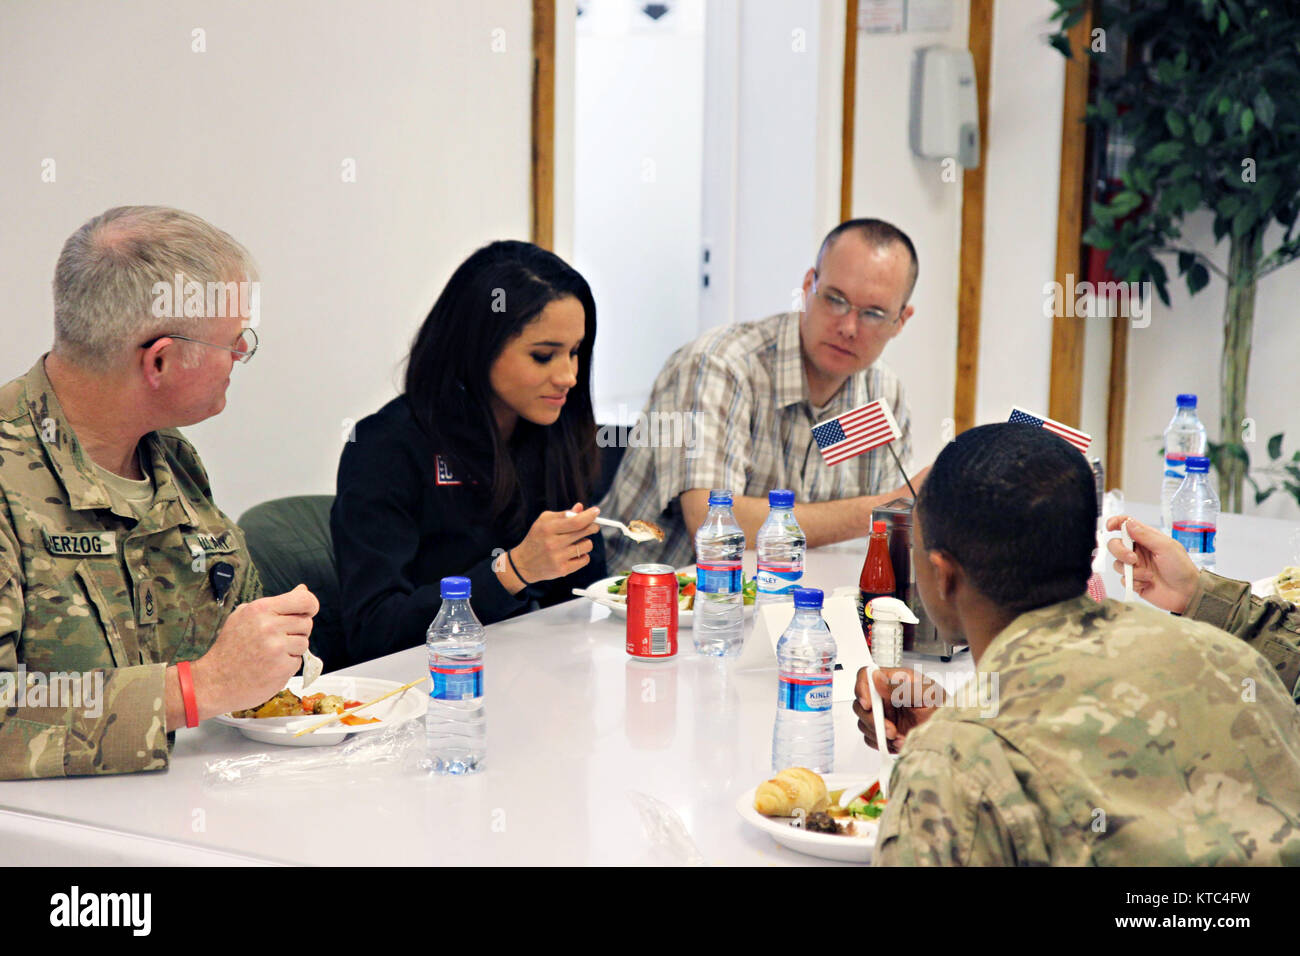 Actress Meghan Markle, center, joins military service members for a meal during the USO Holiday troop visit at Bagram - Stock Image